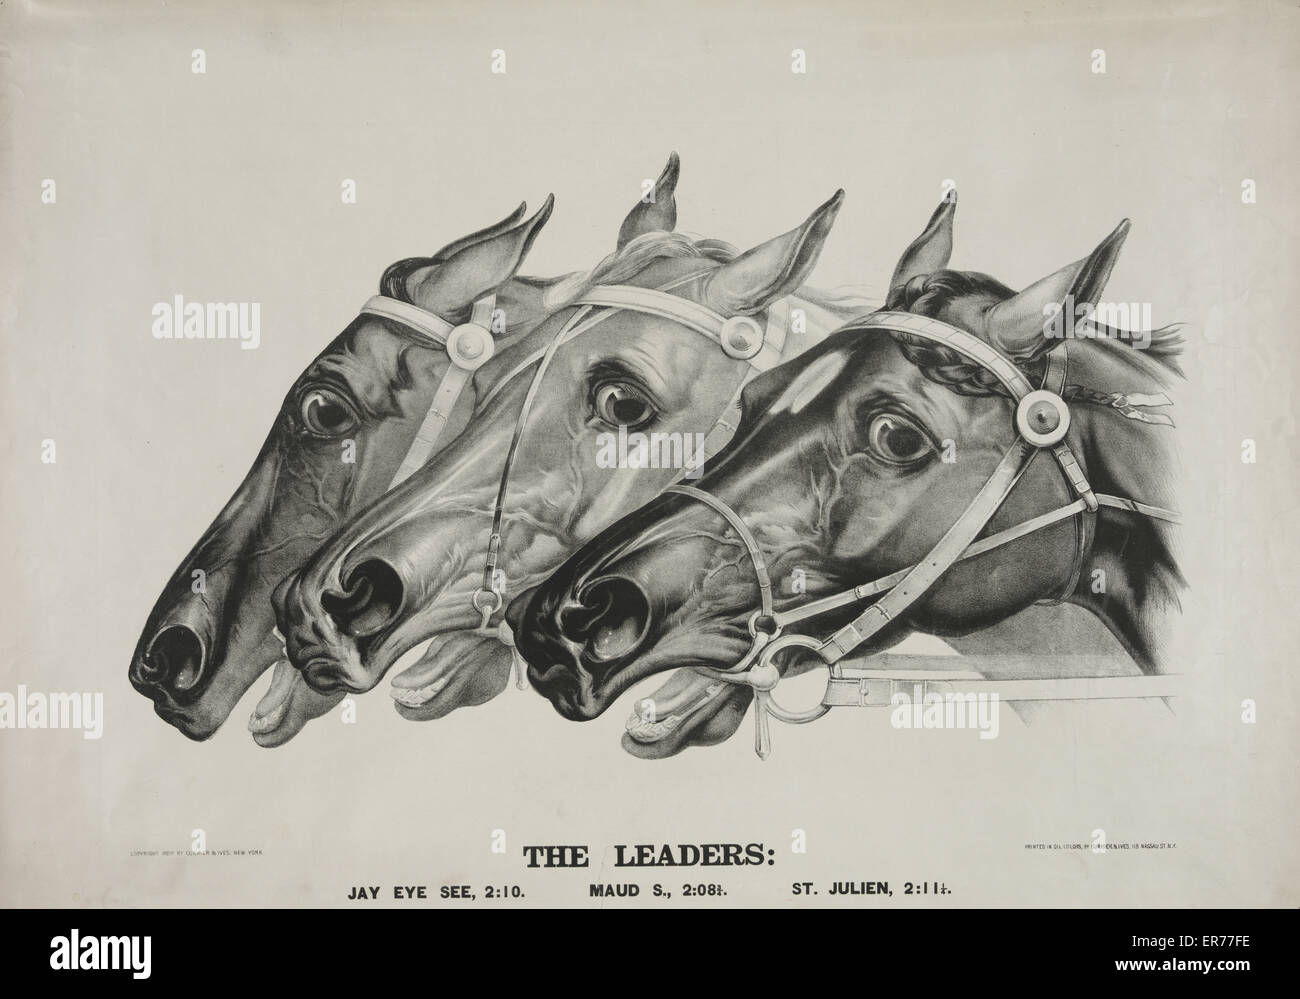 The leaders. Date c1888. - Stock Image